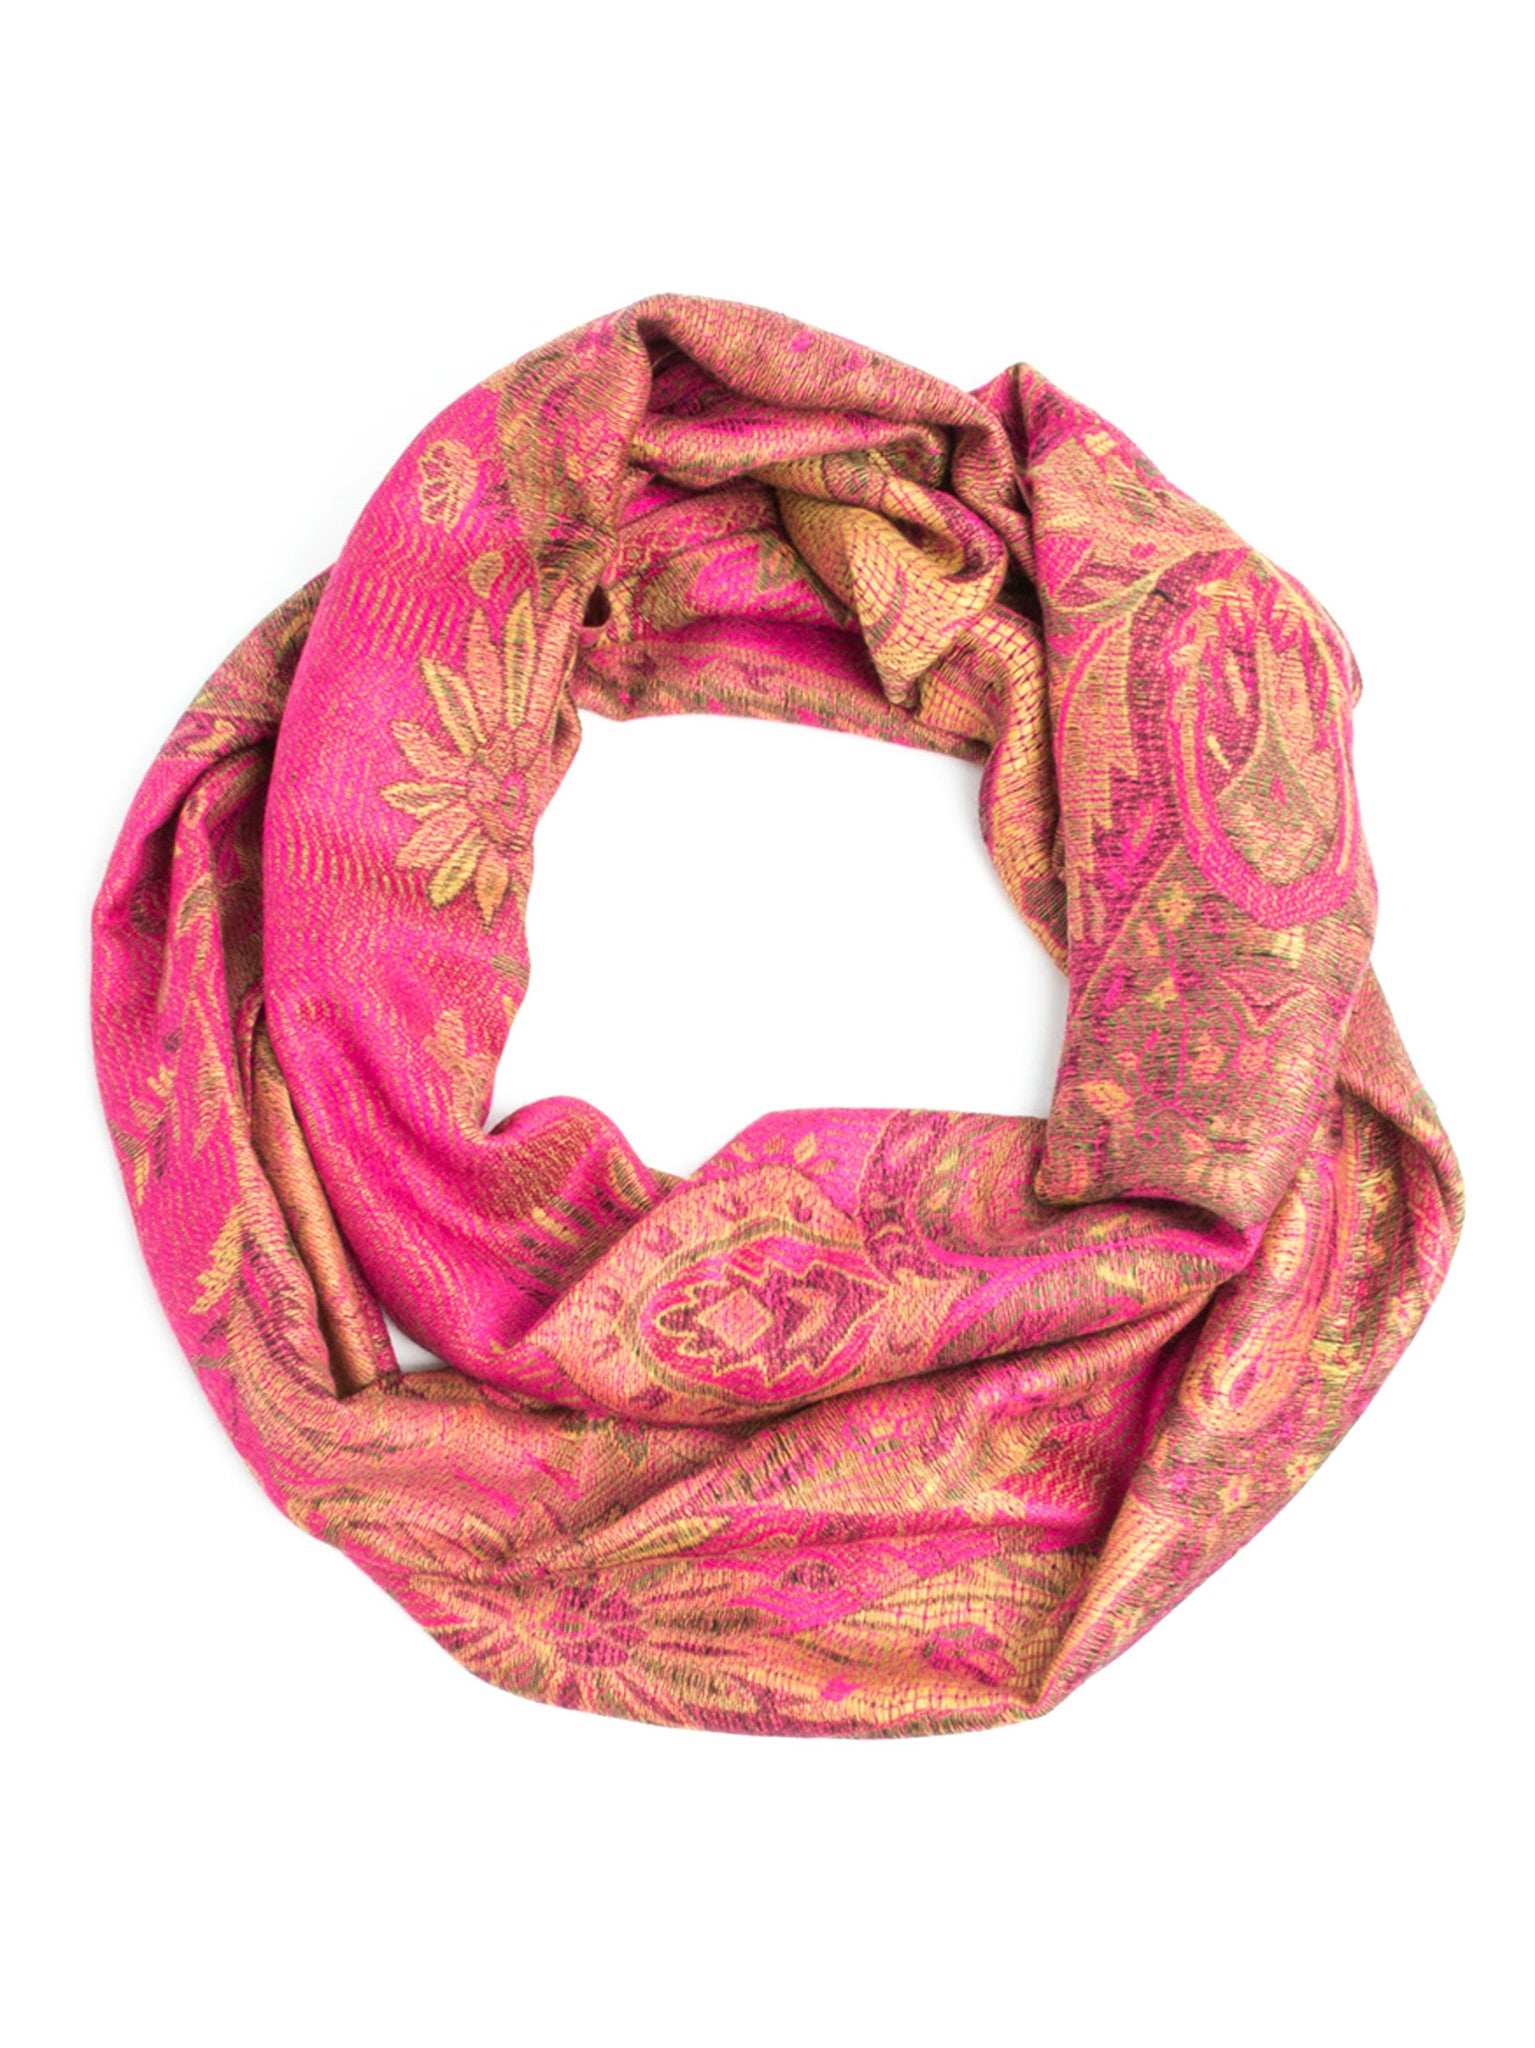 Scarves - Ramaya Infinity Scarf - Richly Colored Rare Infinity Pashmina Scarf -(Hot Pink) Bohomonde  - 7